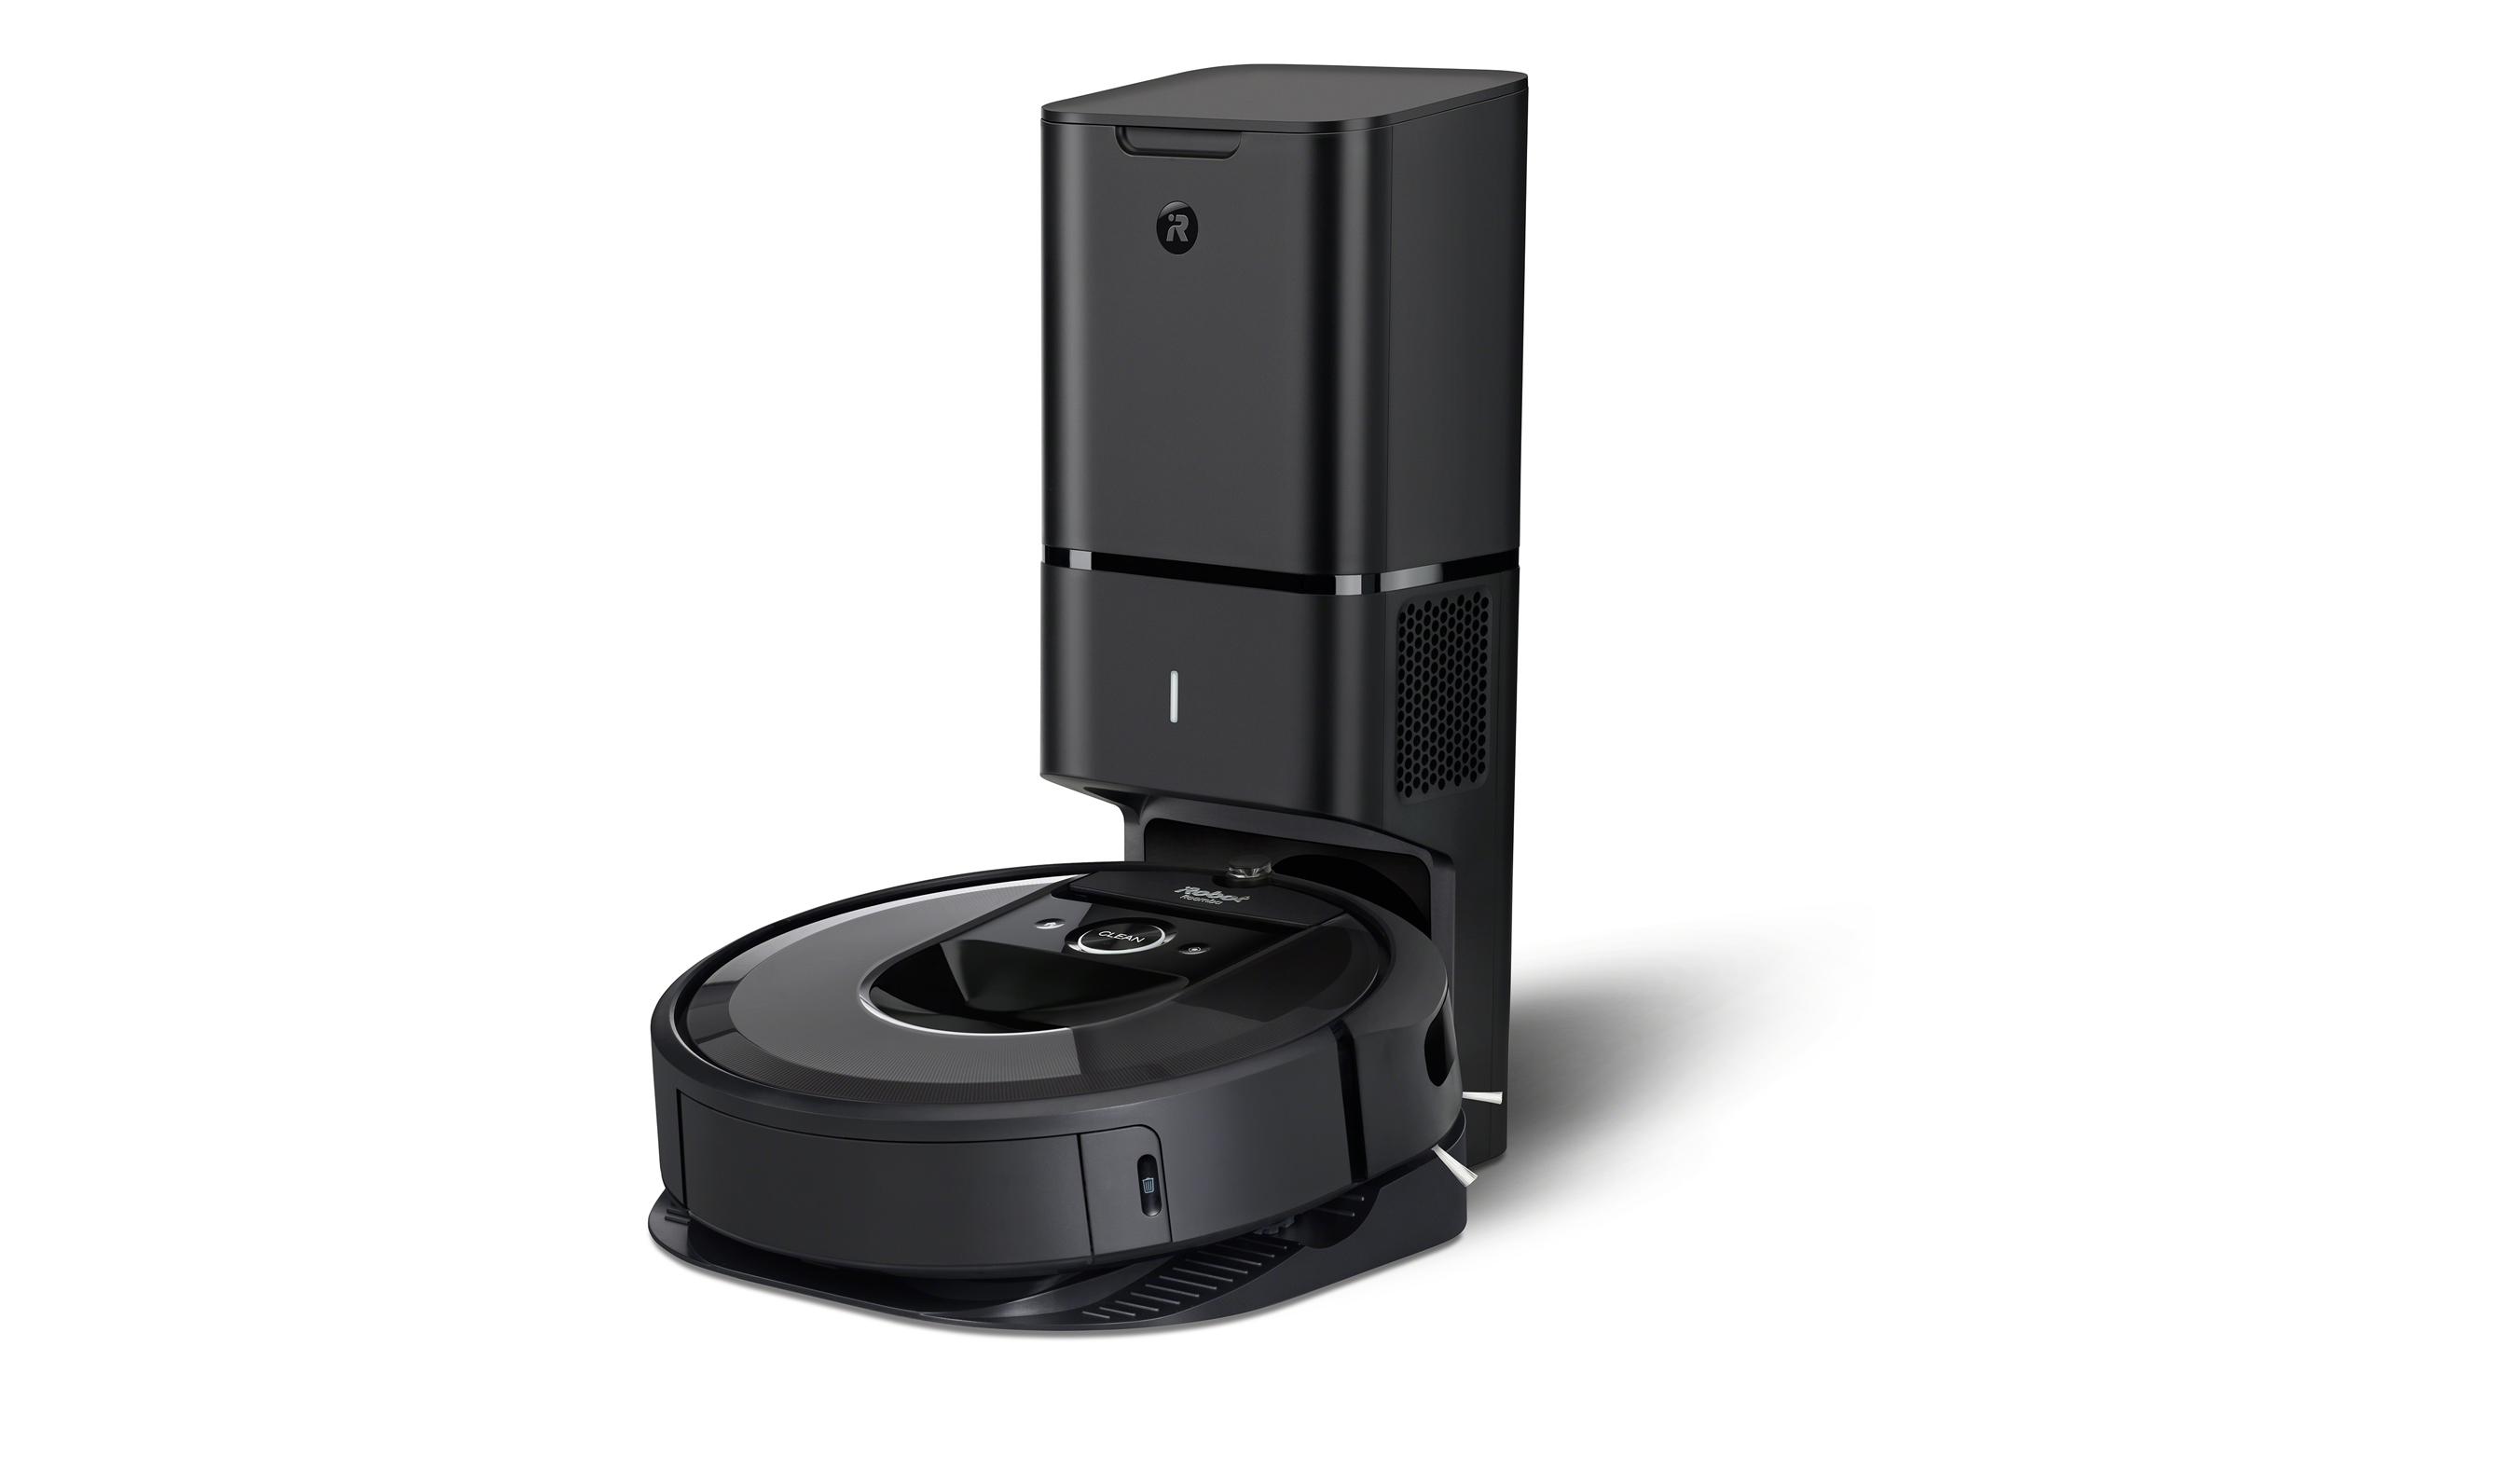 The Roomba® i7+ Robot Vacuum with Clean Base™ Automatic Dirt Disposal takes convenience to a new level - automatically emptying into an enclosed, disposable bag that holds 30 robot bins, so users don't have to think about vacuuming for weeks at a time.